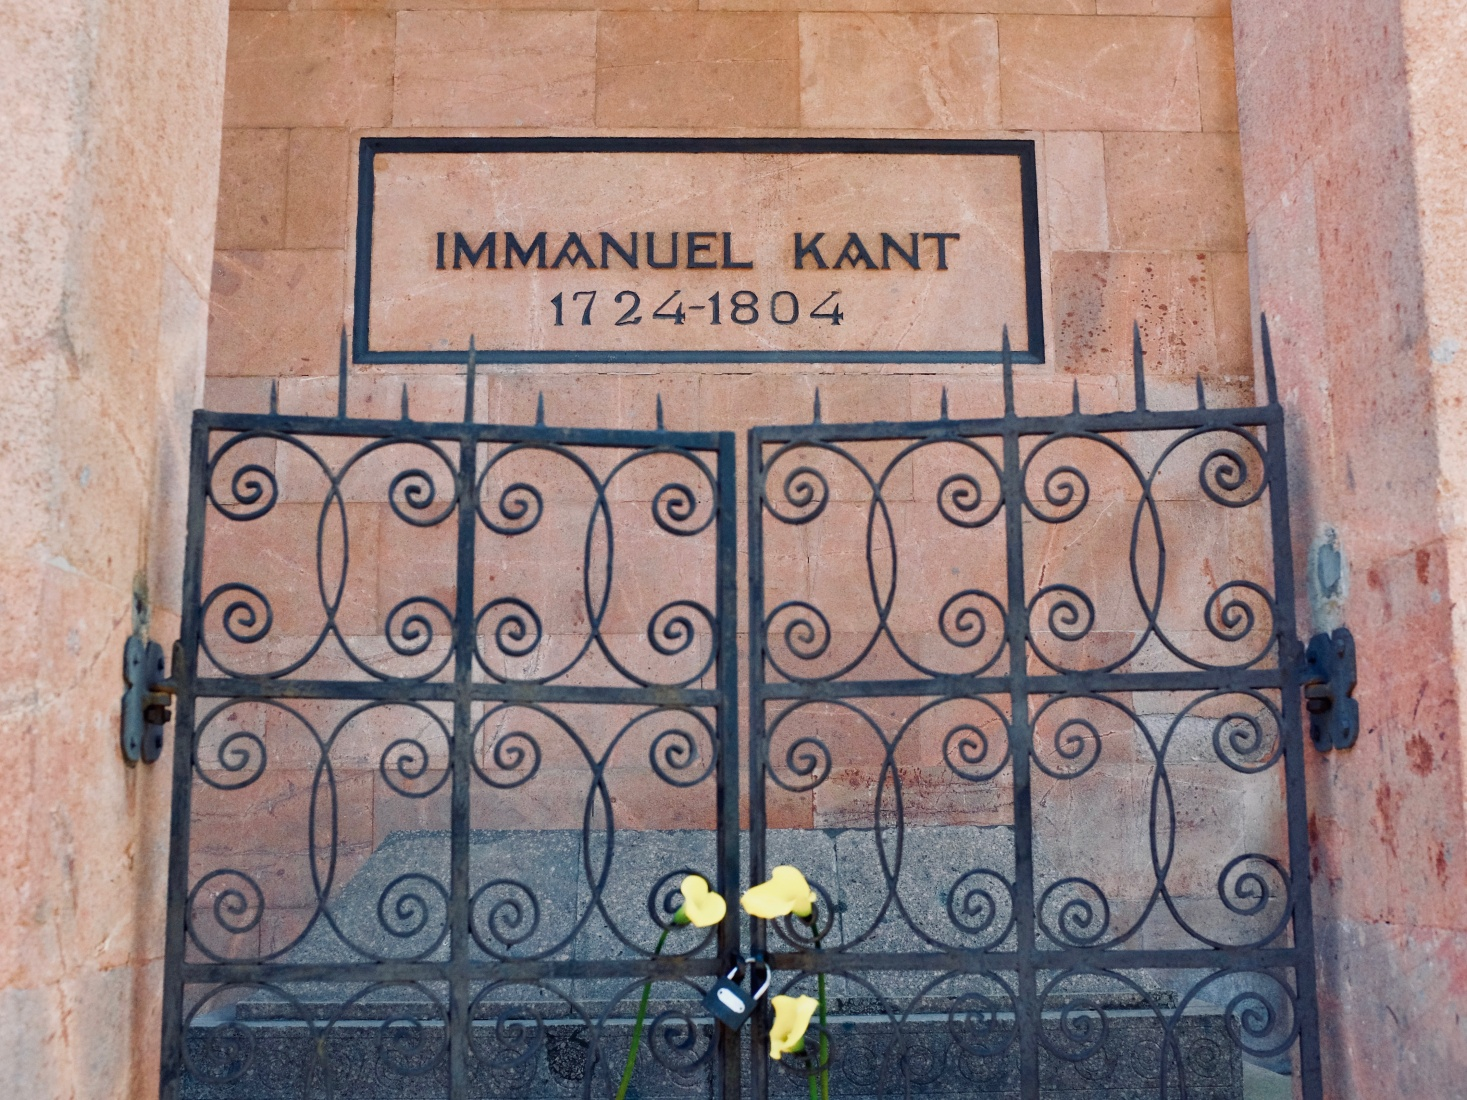 Tomb of philosopher Immanuel Kant at the northern exterior of Kaliningrad Cathedral on Kant Island, in the Russia enclave in the EU.